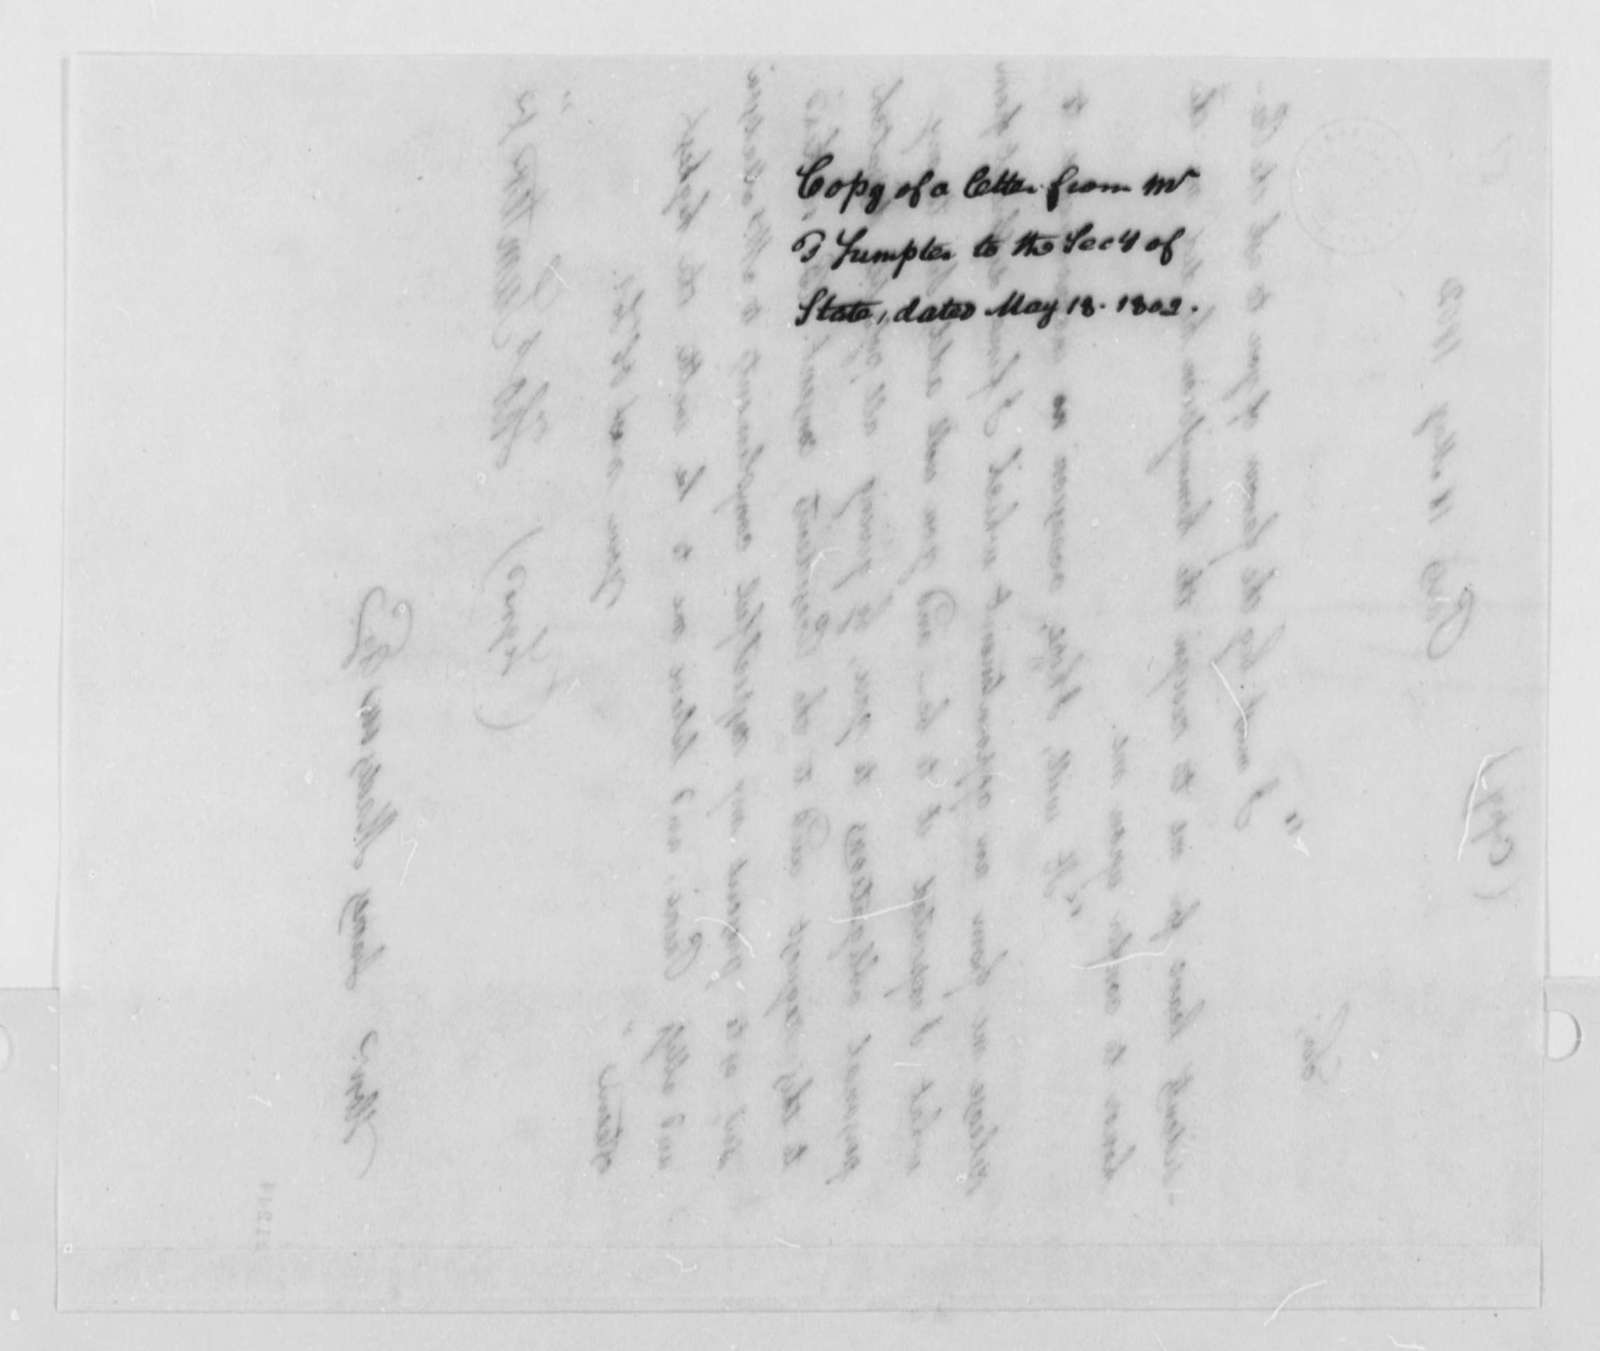 Thomas Sumter, Jr. to James Madison, May 18, 1802